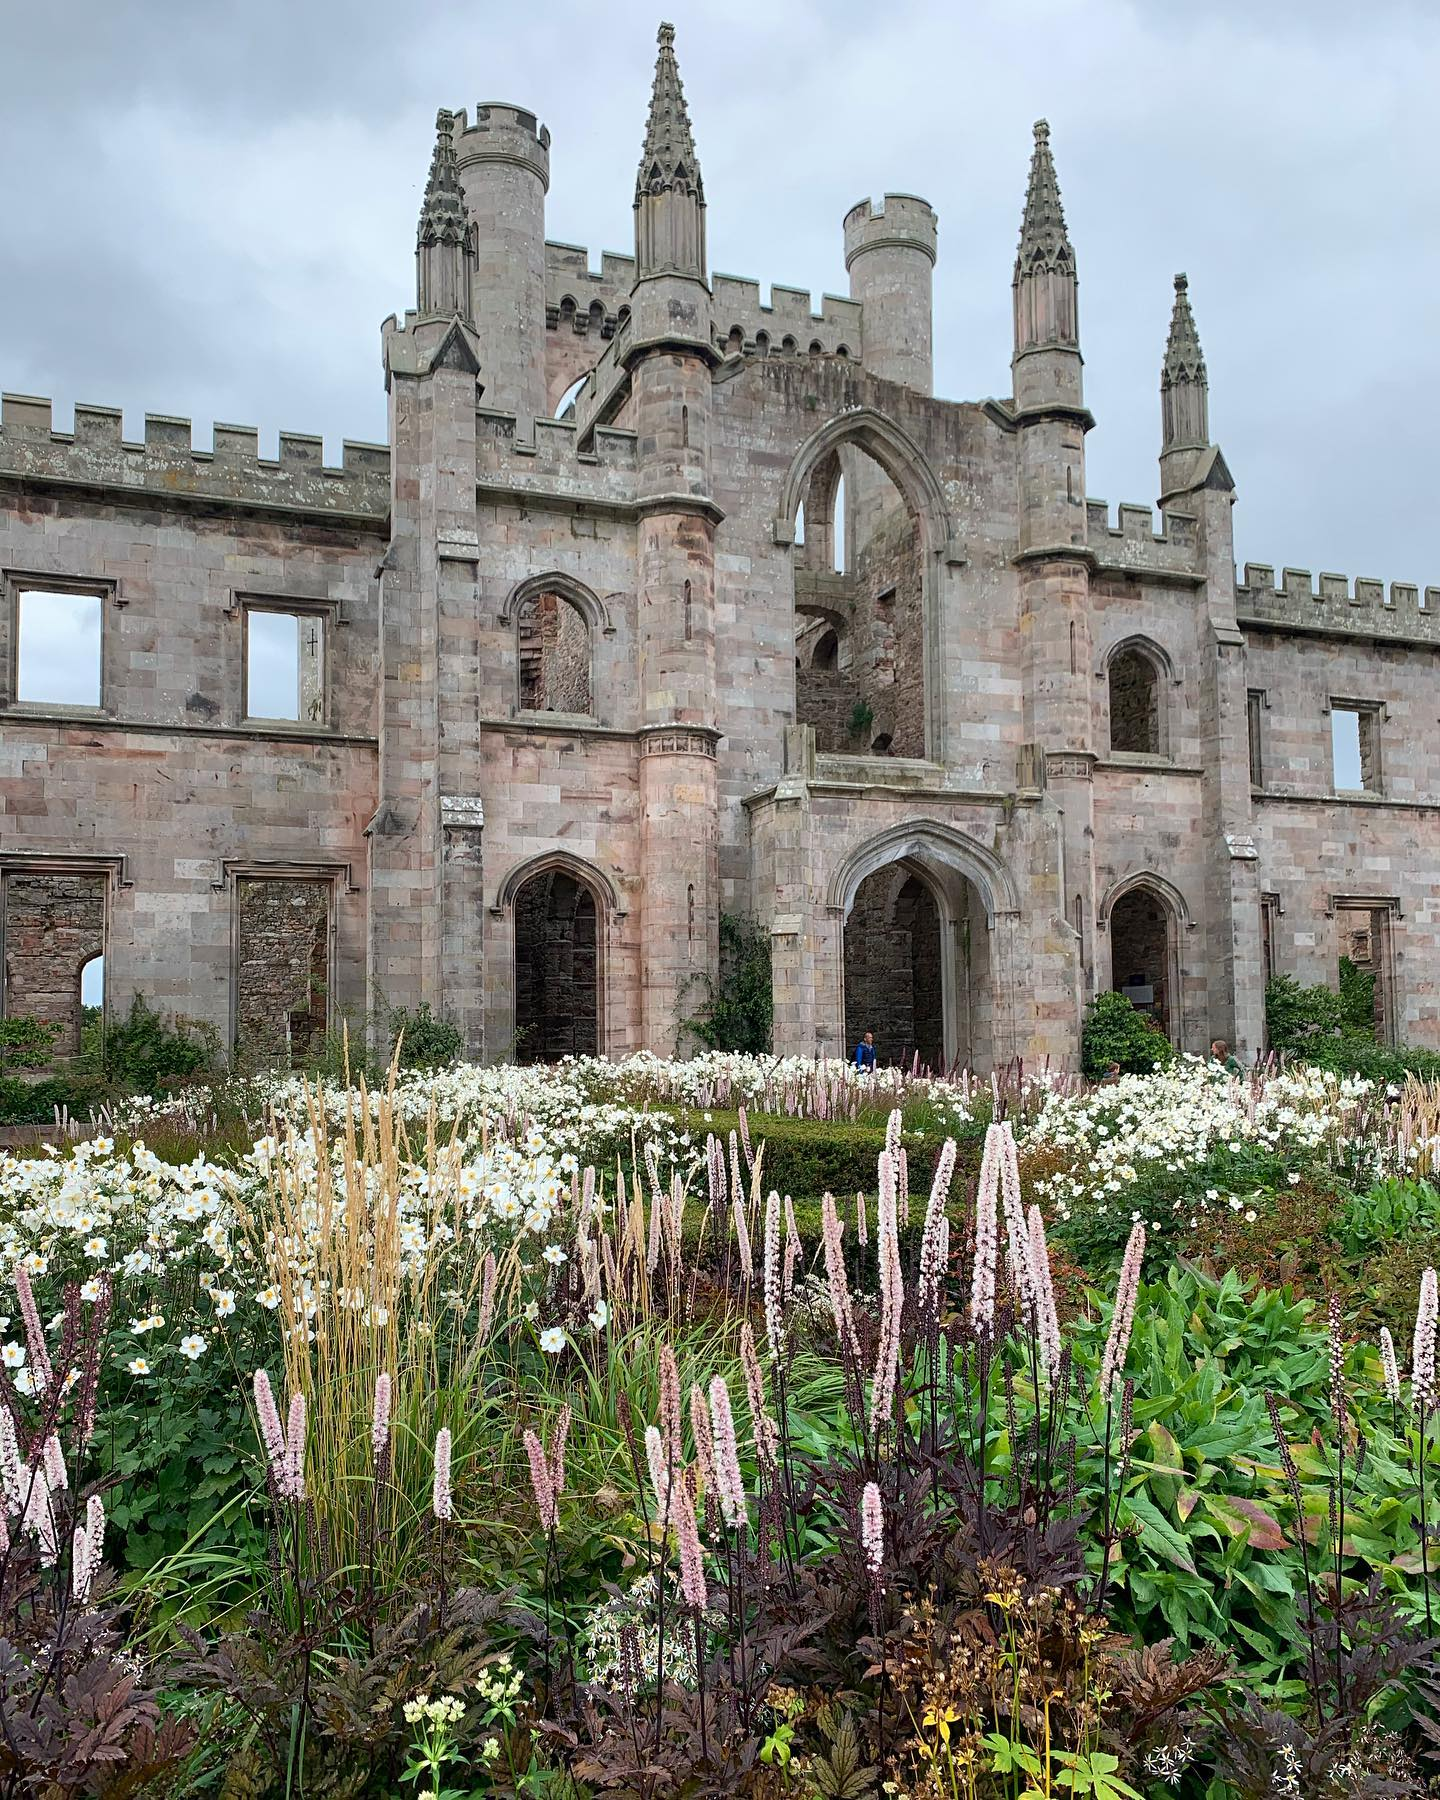 More @lowthercastle ...the tapestry garden by @coyotewillow in front of the ruin looking abundant at the end of the summer